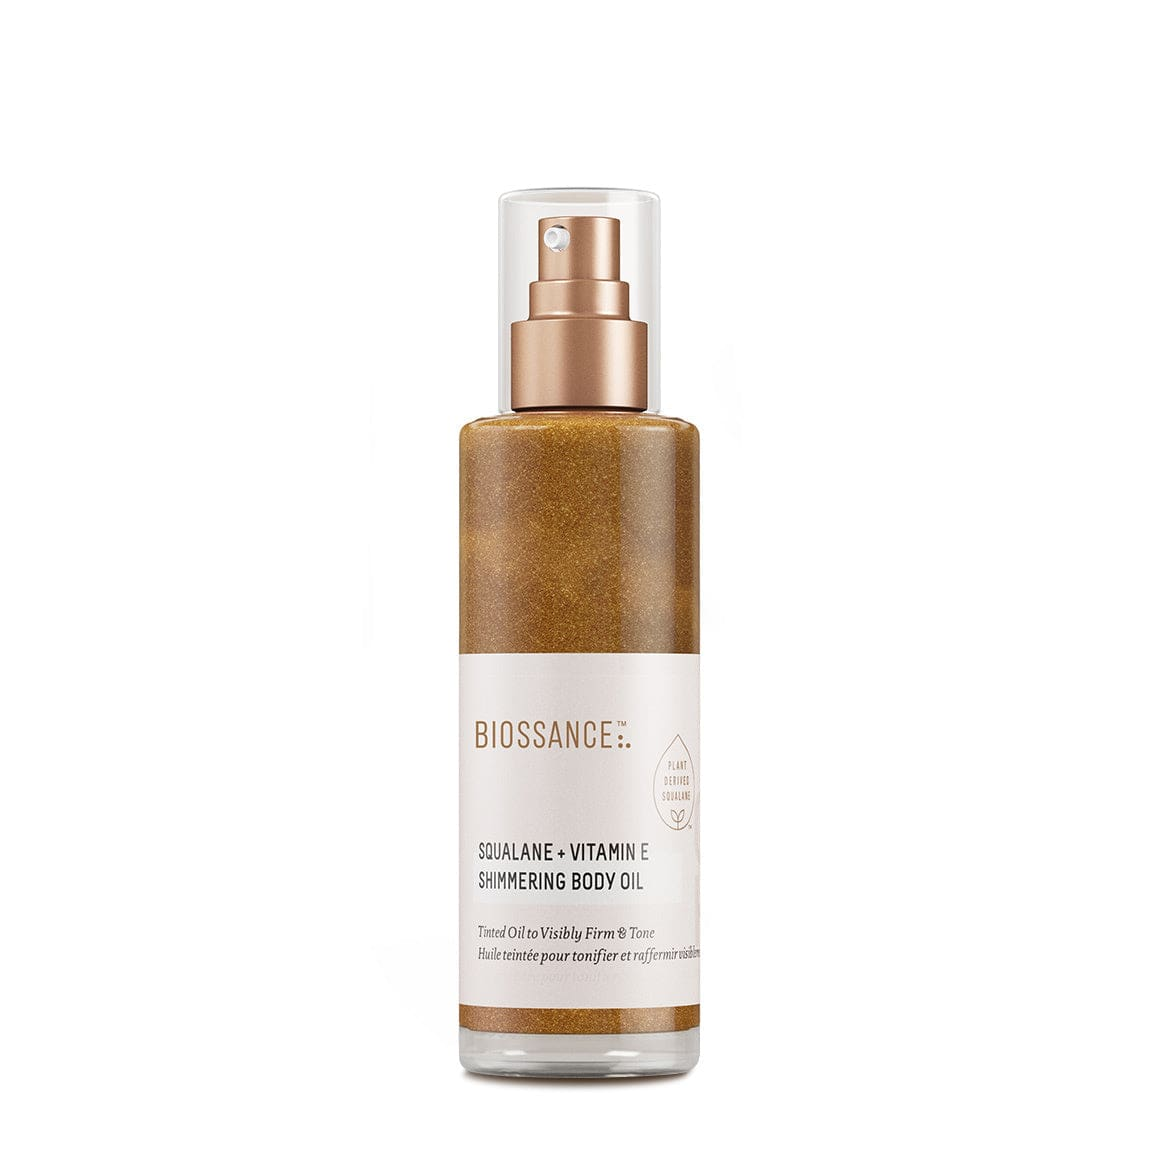 Squalane + Vitamin E Shimmering Body Oil